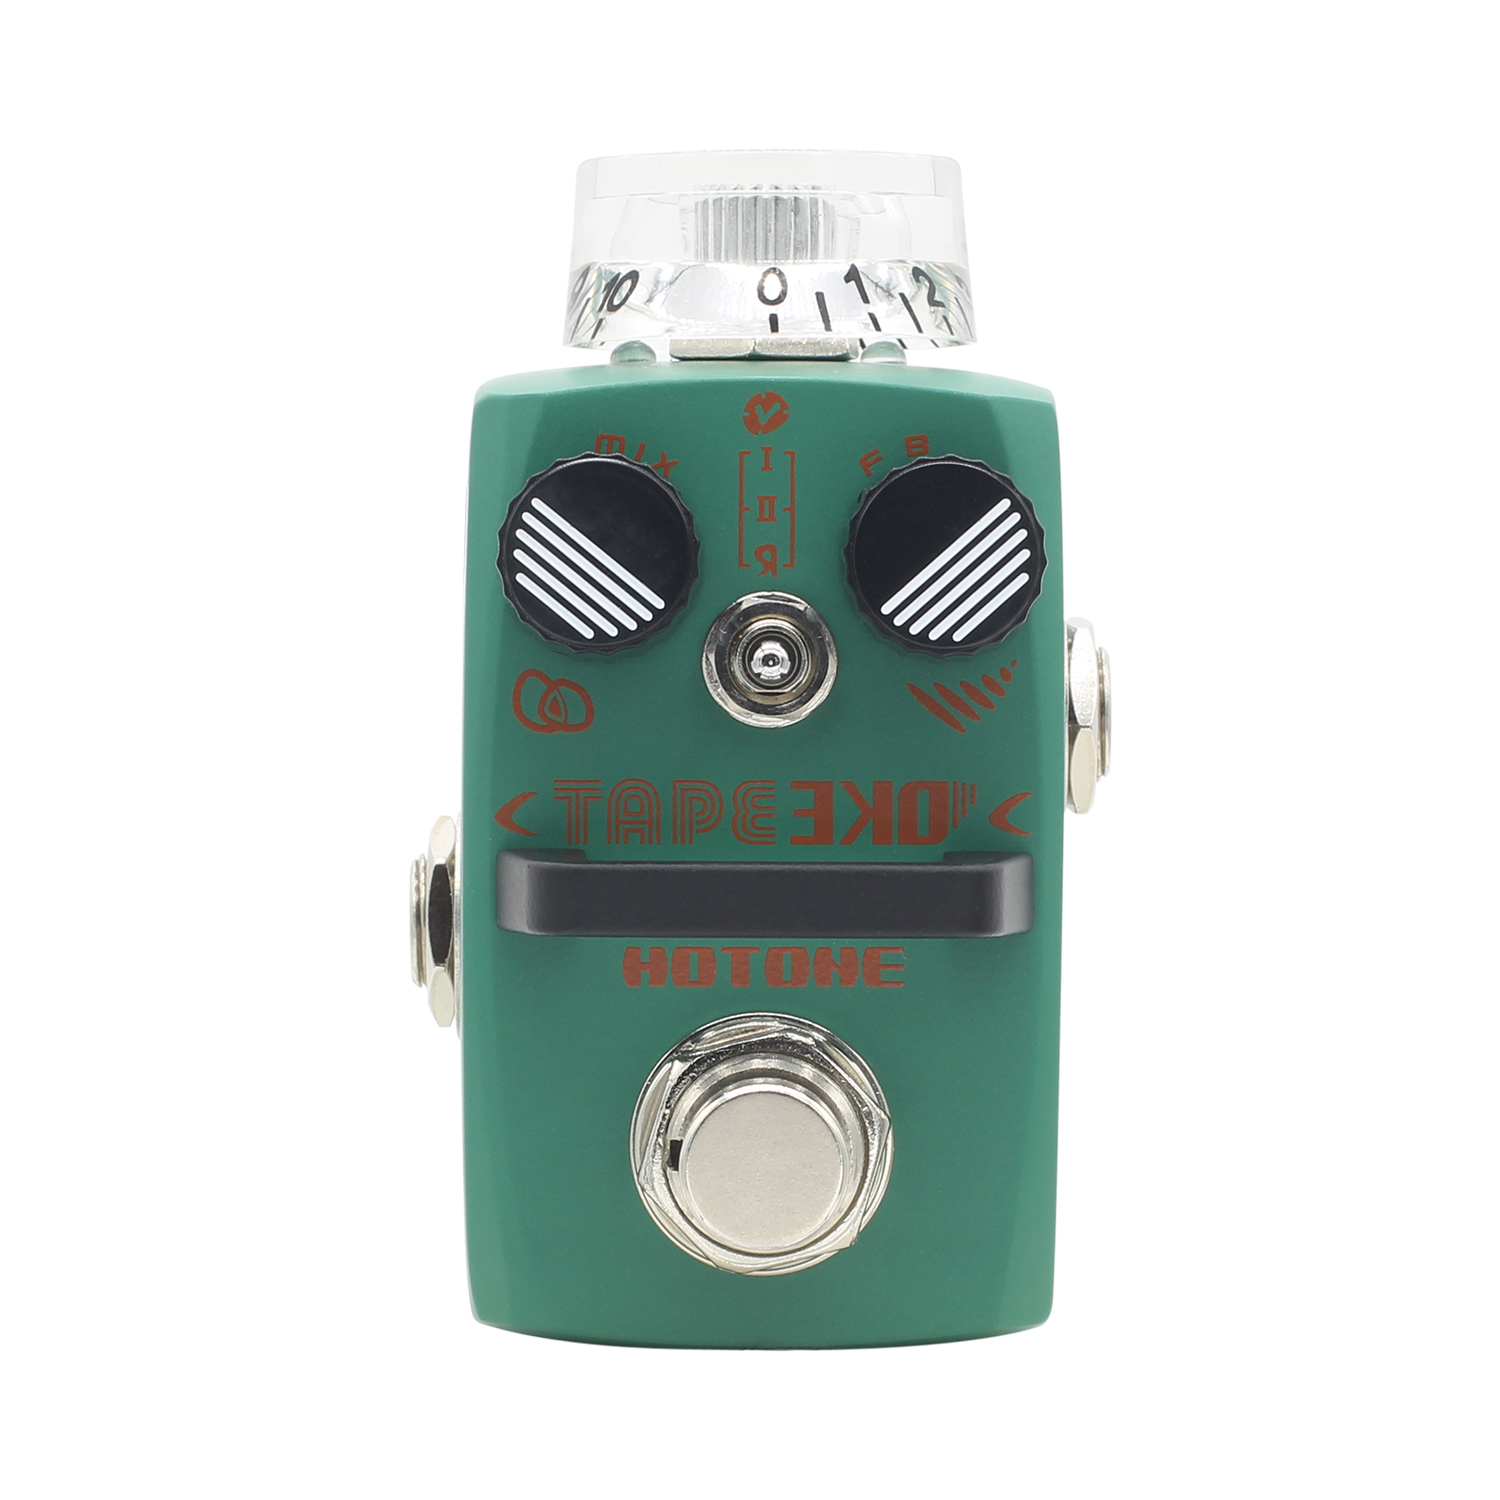 Hotone Tape EKO Delay Effect Pedal True Bypass with 3 Delay Modes Effects for Electric Guitar mooer ensemble queen bass chorus effect pedal mini guitar effects true bypass with free connector and footswitch topper